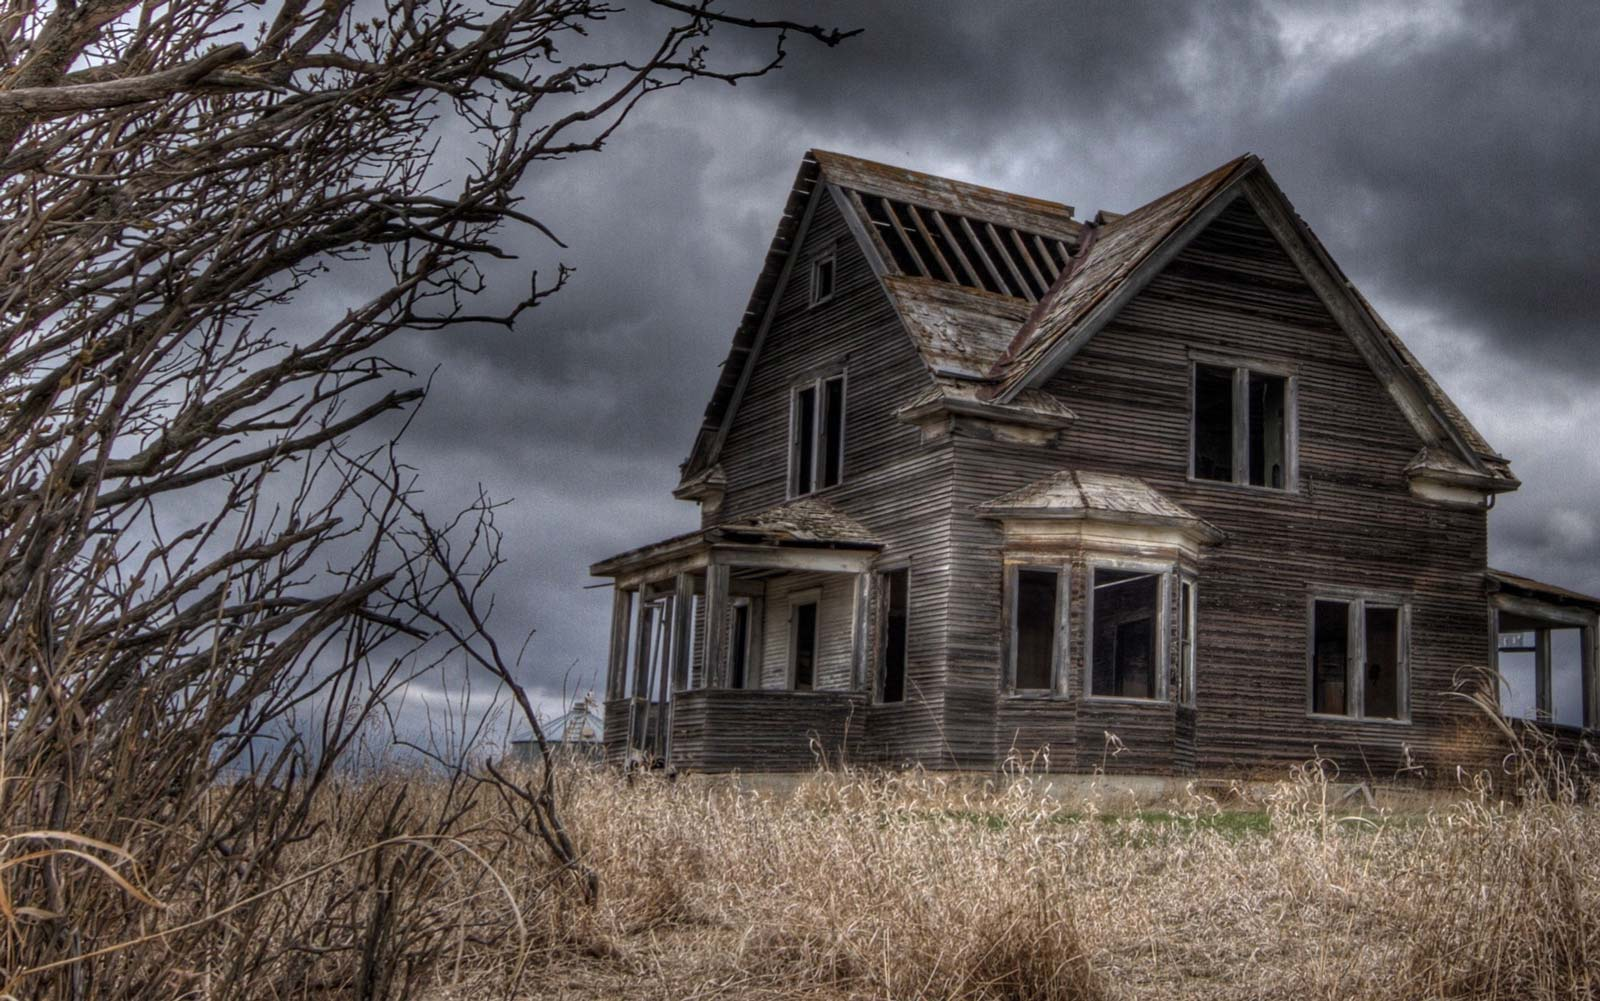 Going to a Haunted House Can Make You Happier, Study Says